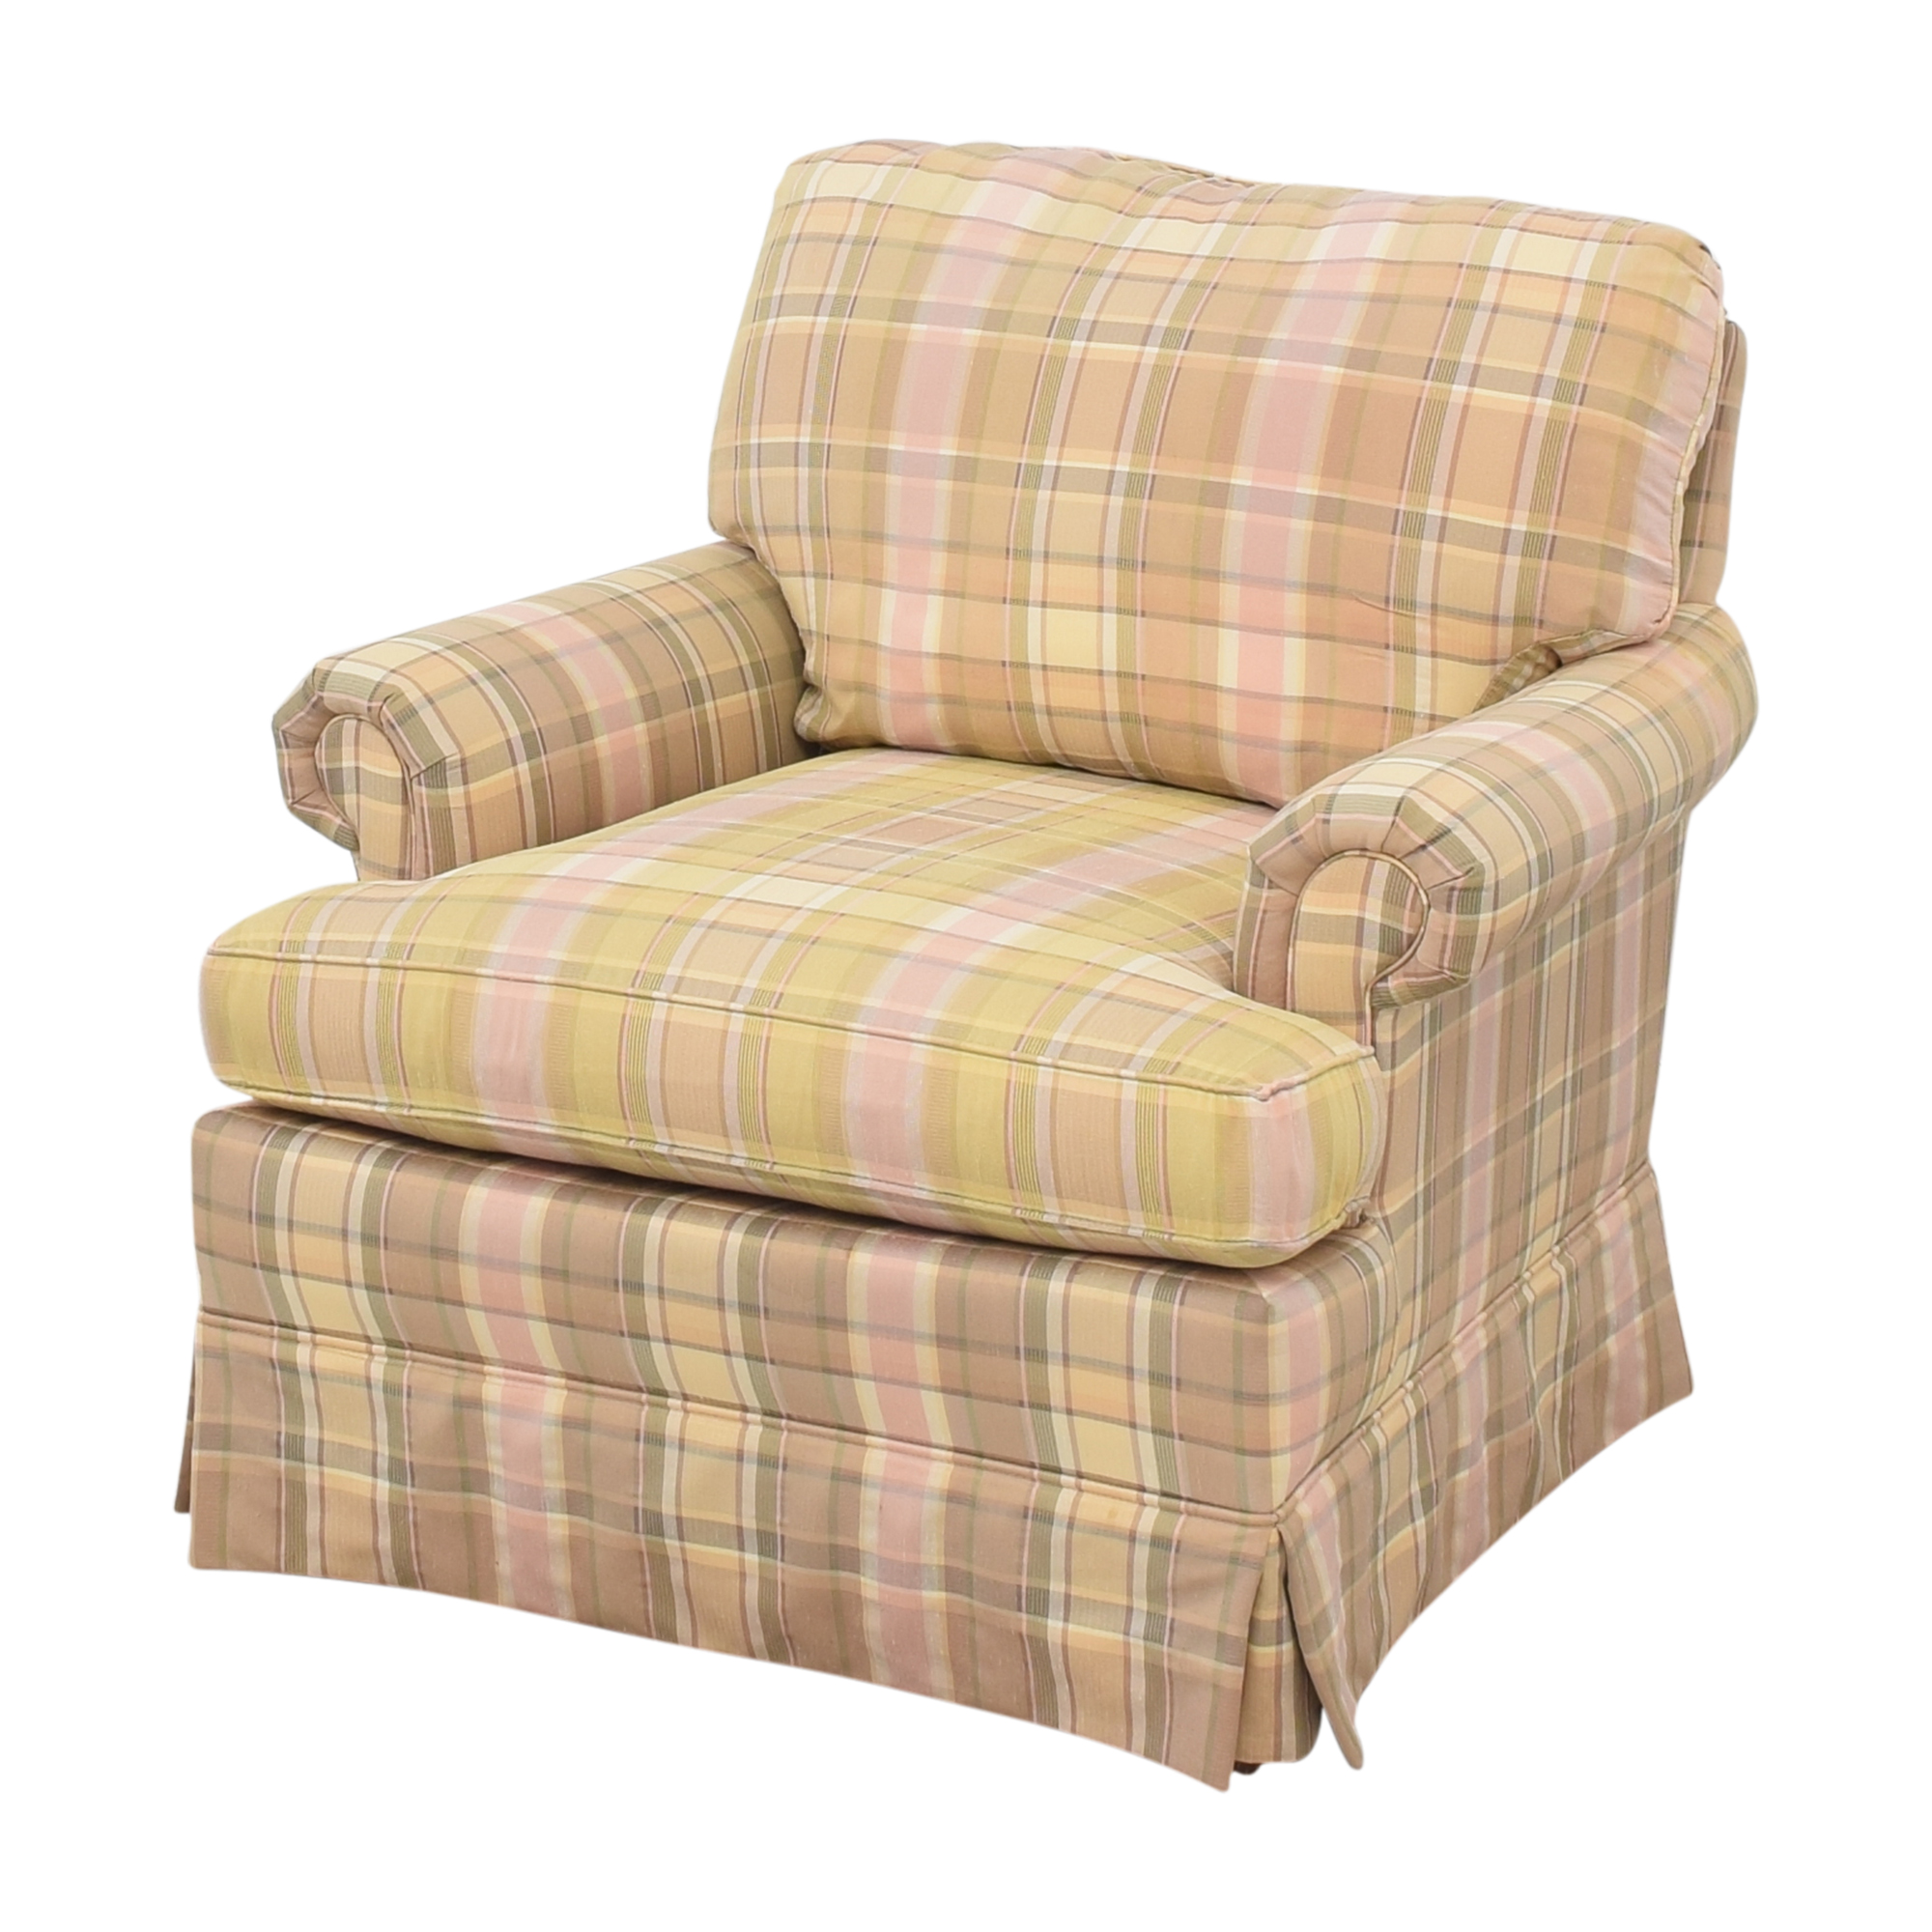 Thomasville Thomasville Skirted Plaid Chair for sale